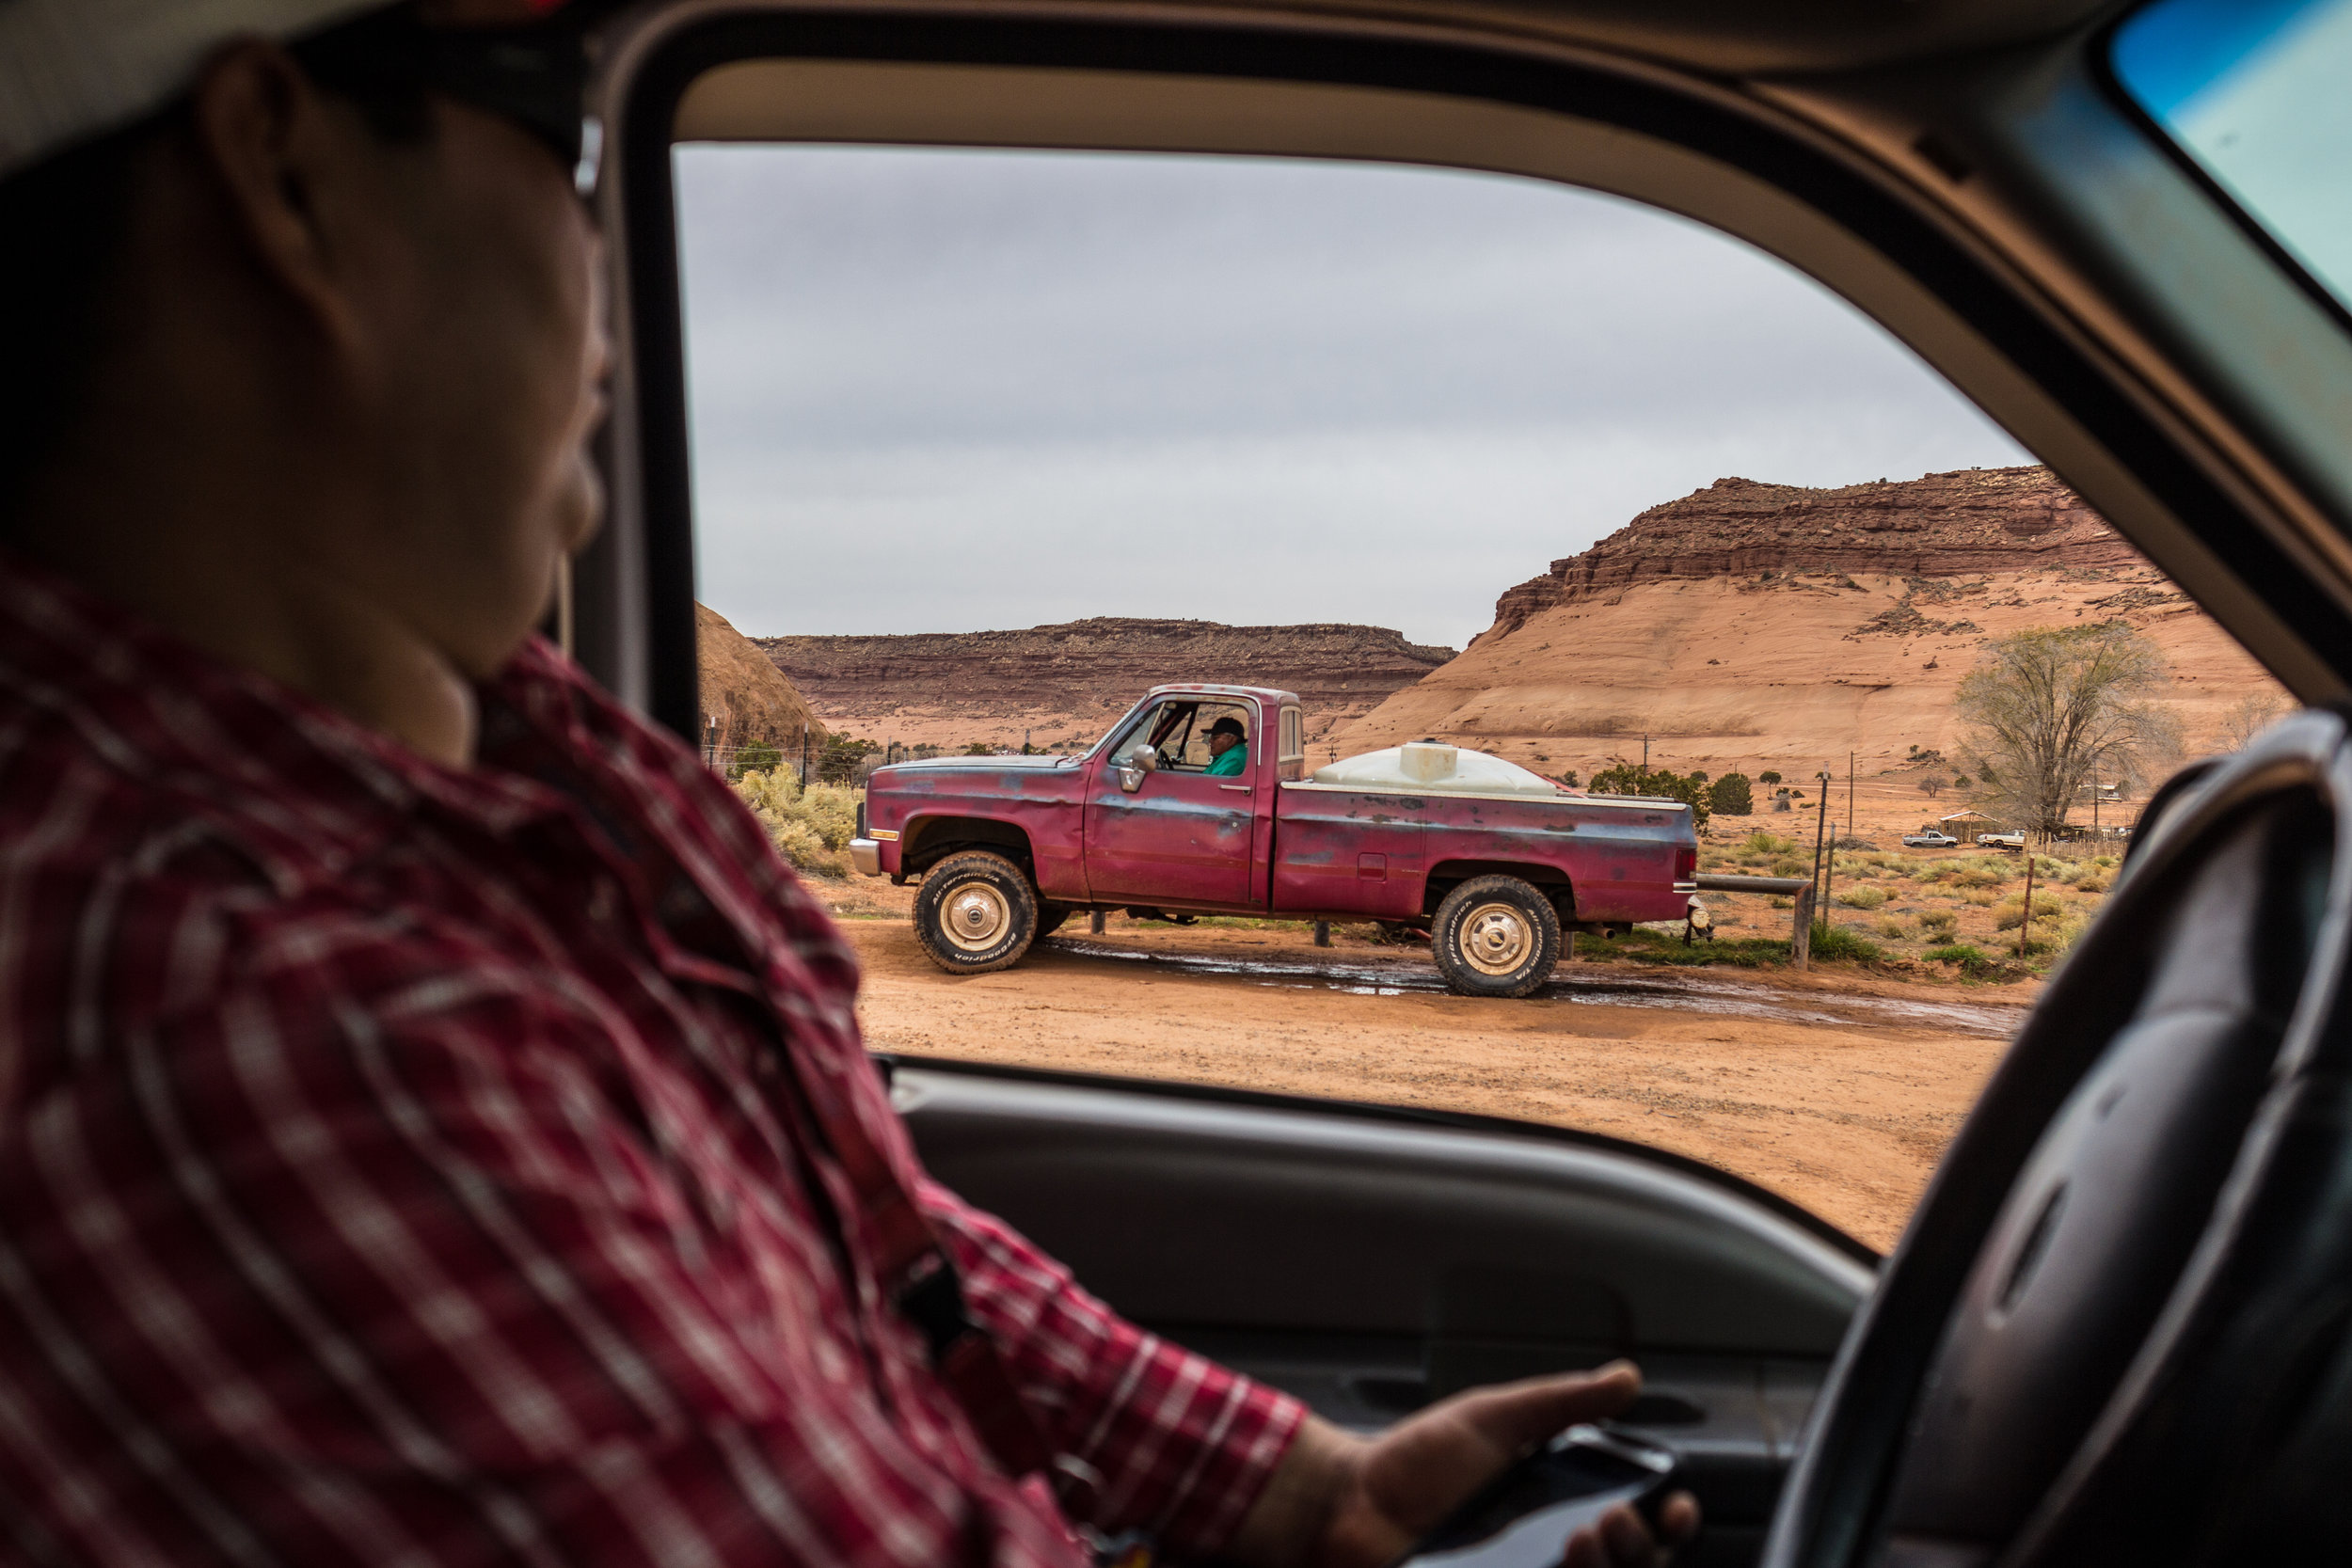 Will Yazzie waits in line with his truck to fill tanks with water near the community's center.   This is the only water access his family has and they must fill tanks and drive them back to their house on a regular basis.